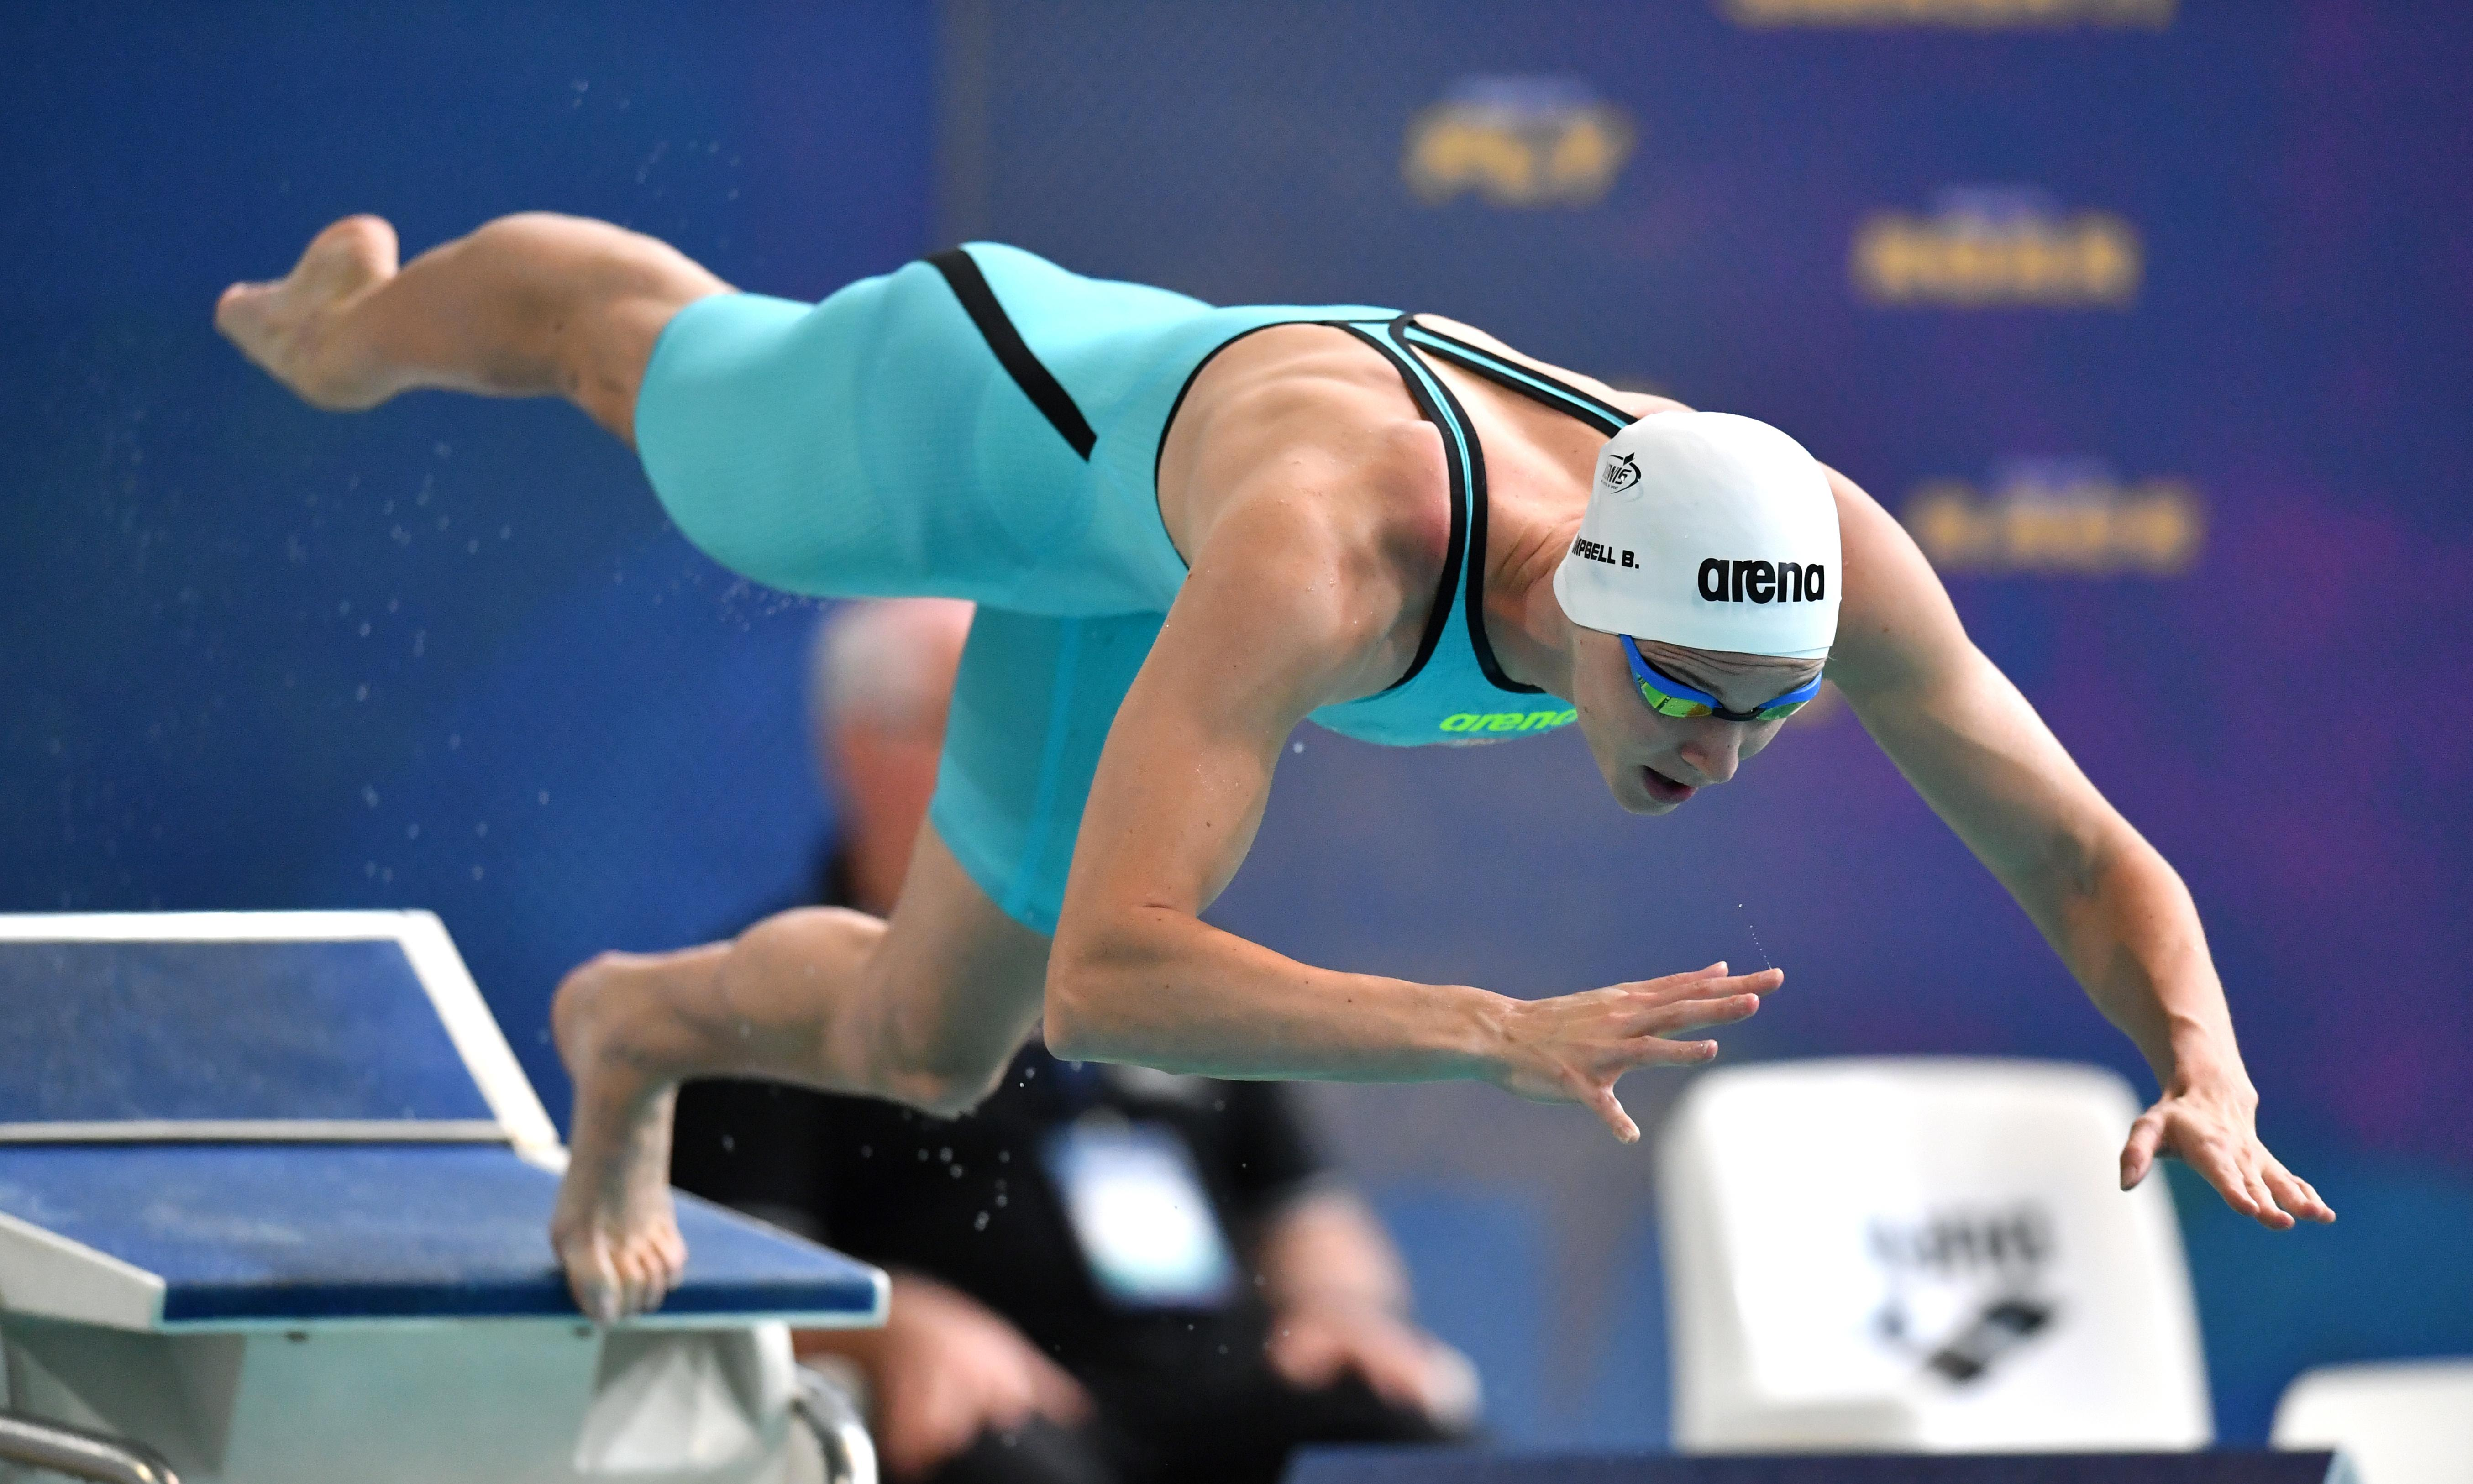 Making a splash: new big-money competition shakes up swimming